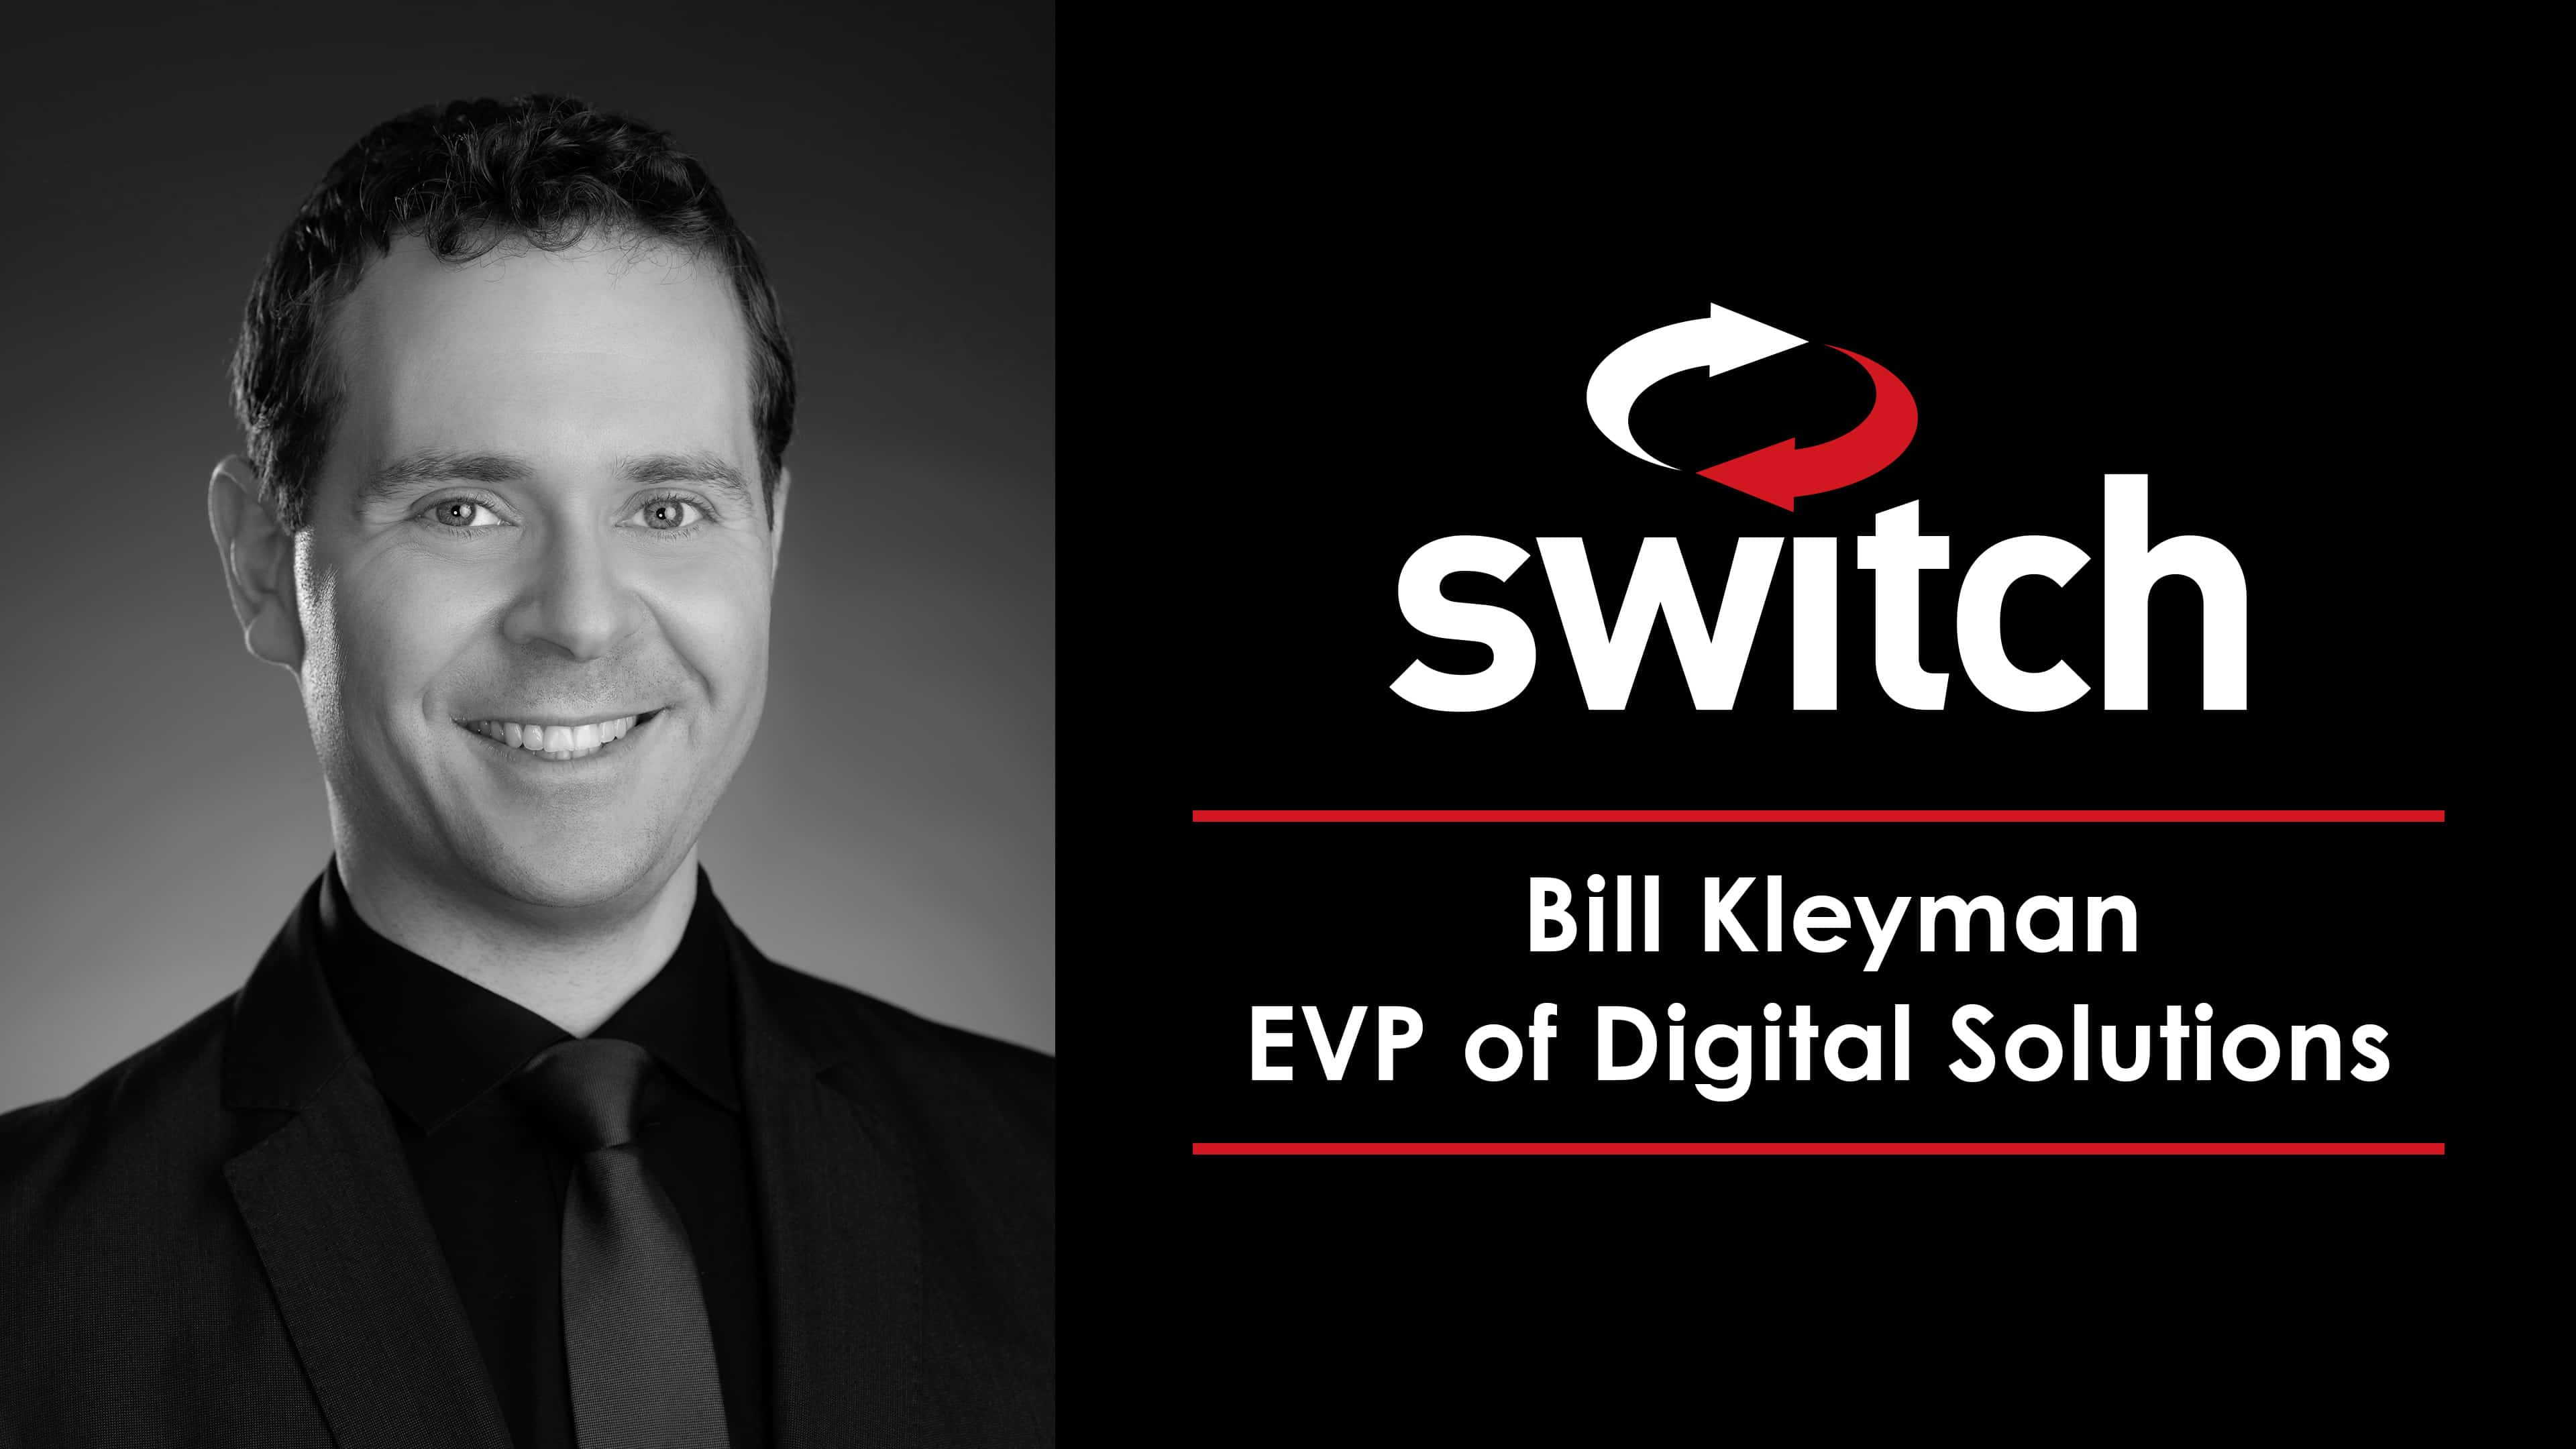 Digital Innovation Leader and Technology Journalist Bill Kleyman Joins Switch as EVP of Digital Solutions